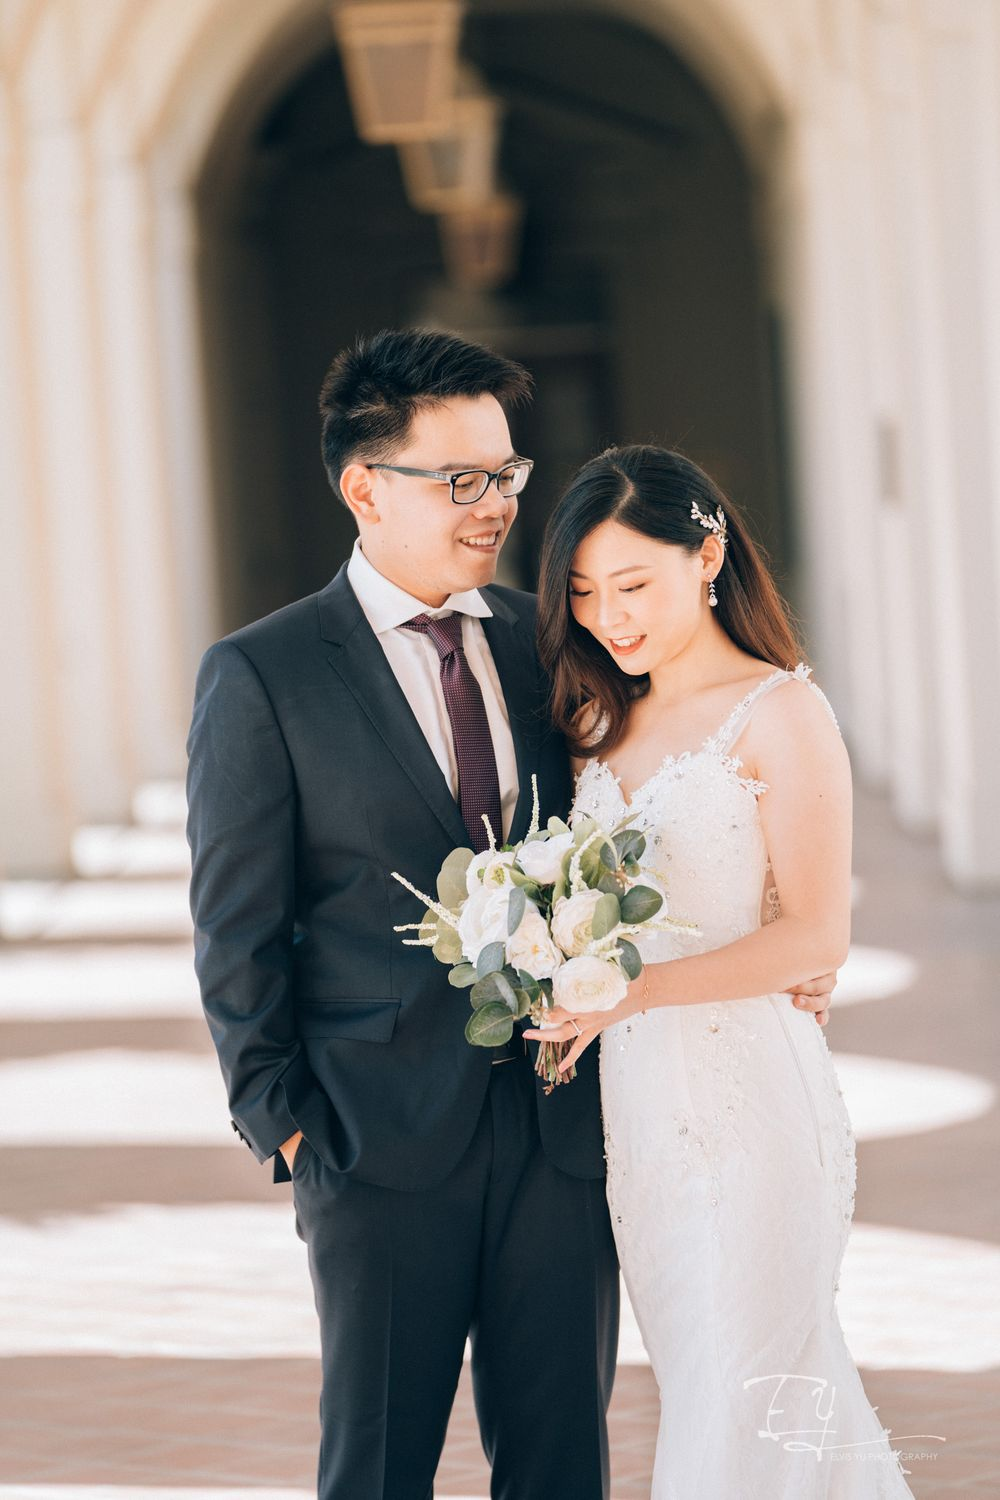 elvis yu photography pre wedding photo pasadena city hall los angeles california socal